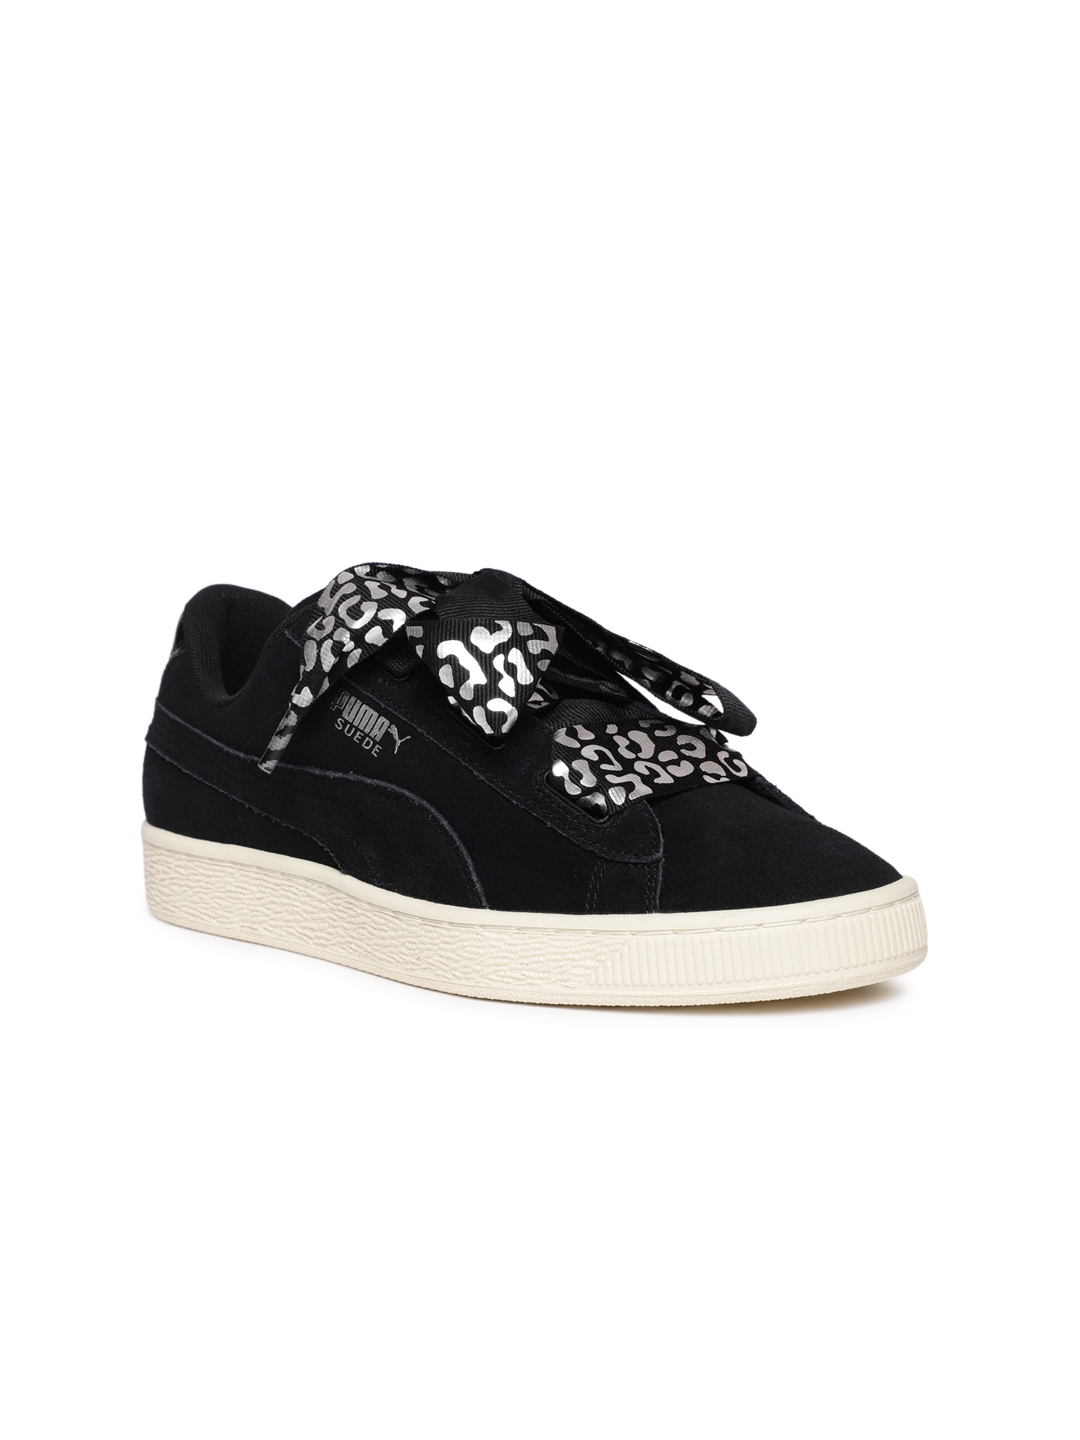 5f9697dbb10 Buy Puma Girls Black Suede Heart Suede AthLuxe Jr Sneakers - Casual ...